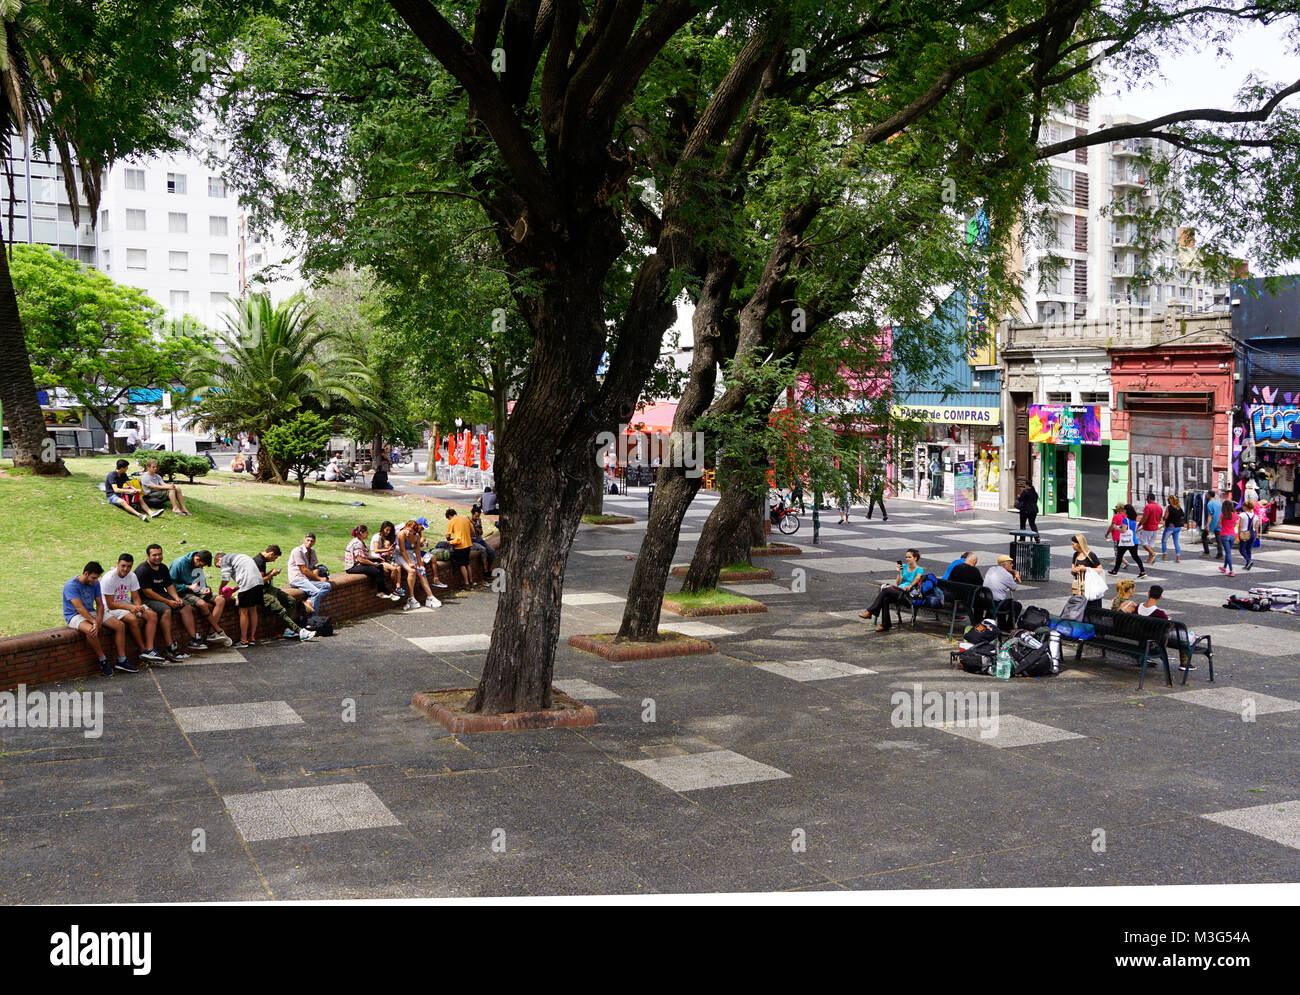 Open public space in downtown Montevideo, Uruguay. - Stock Image